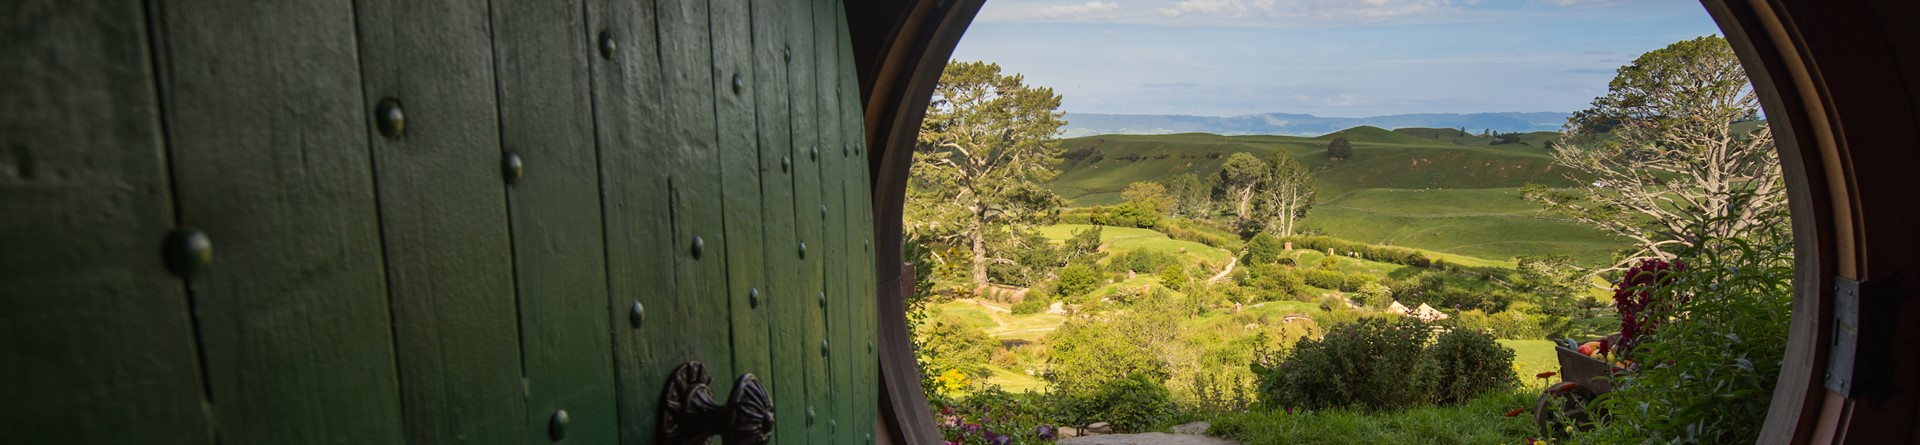 Hobbiton Movie Set, Bag End, Waikato, New Zealand.jpg